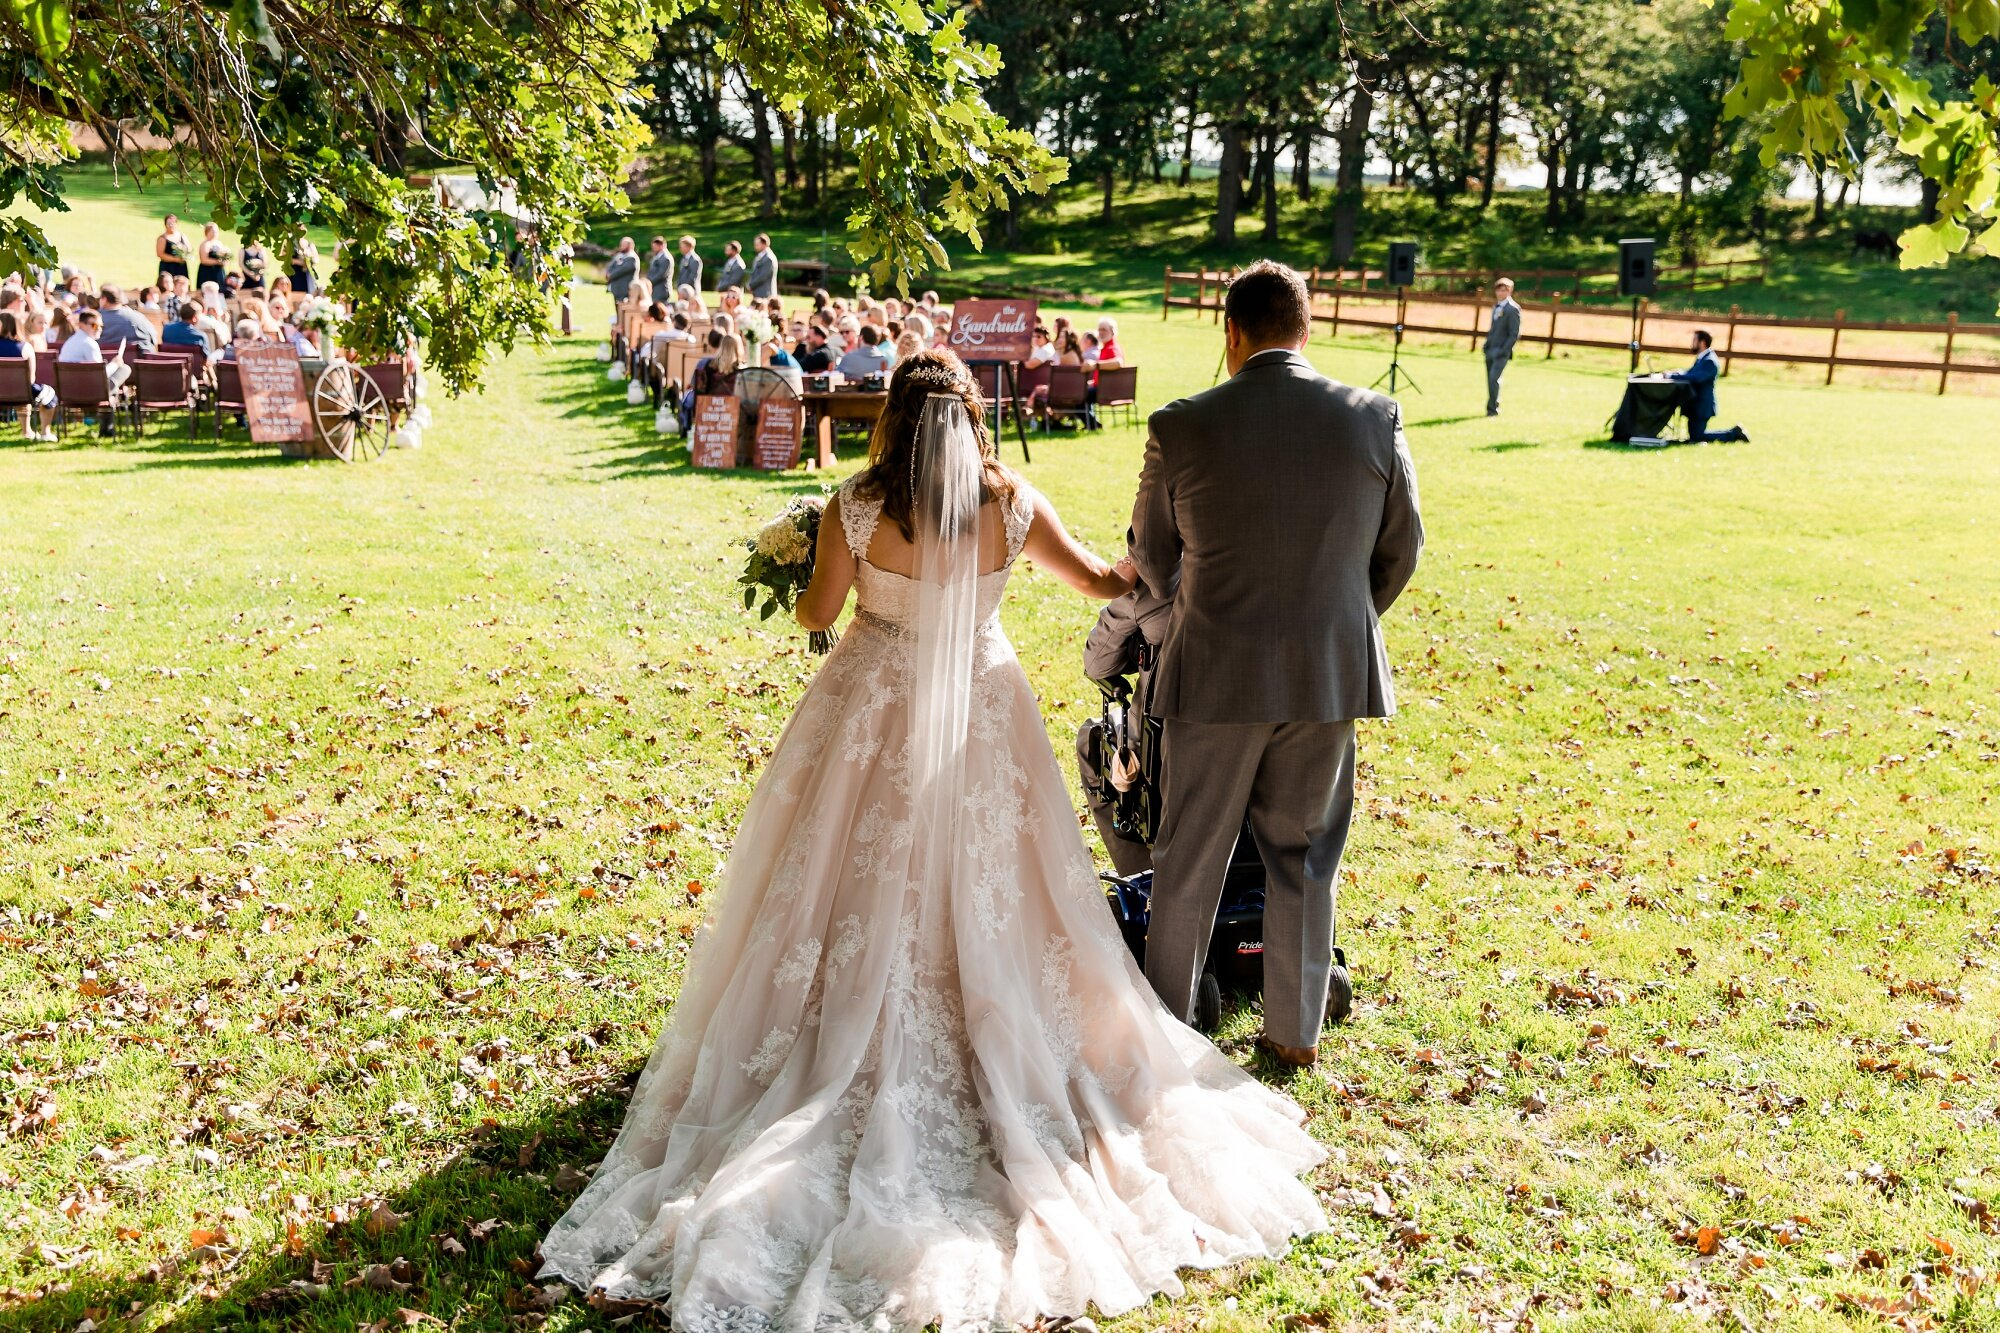 Amber Langerud Photography_Lake Park Minnesota, Outdoor Barn Wedding With Horses_6981.jpg